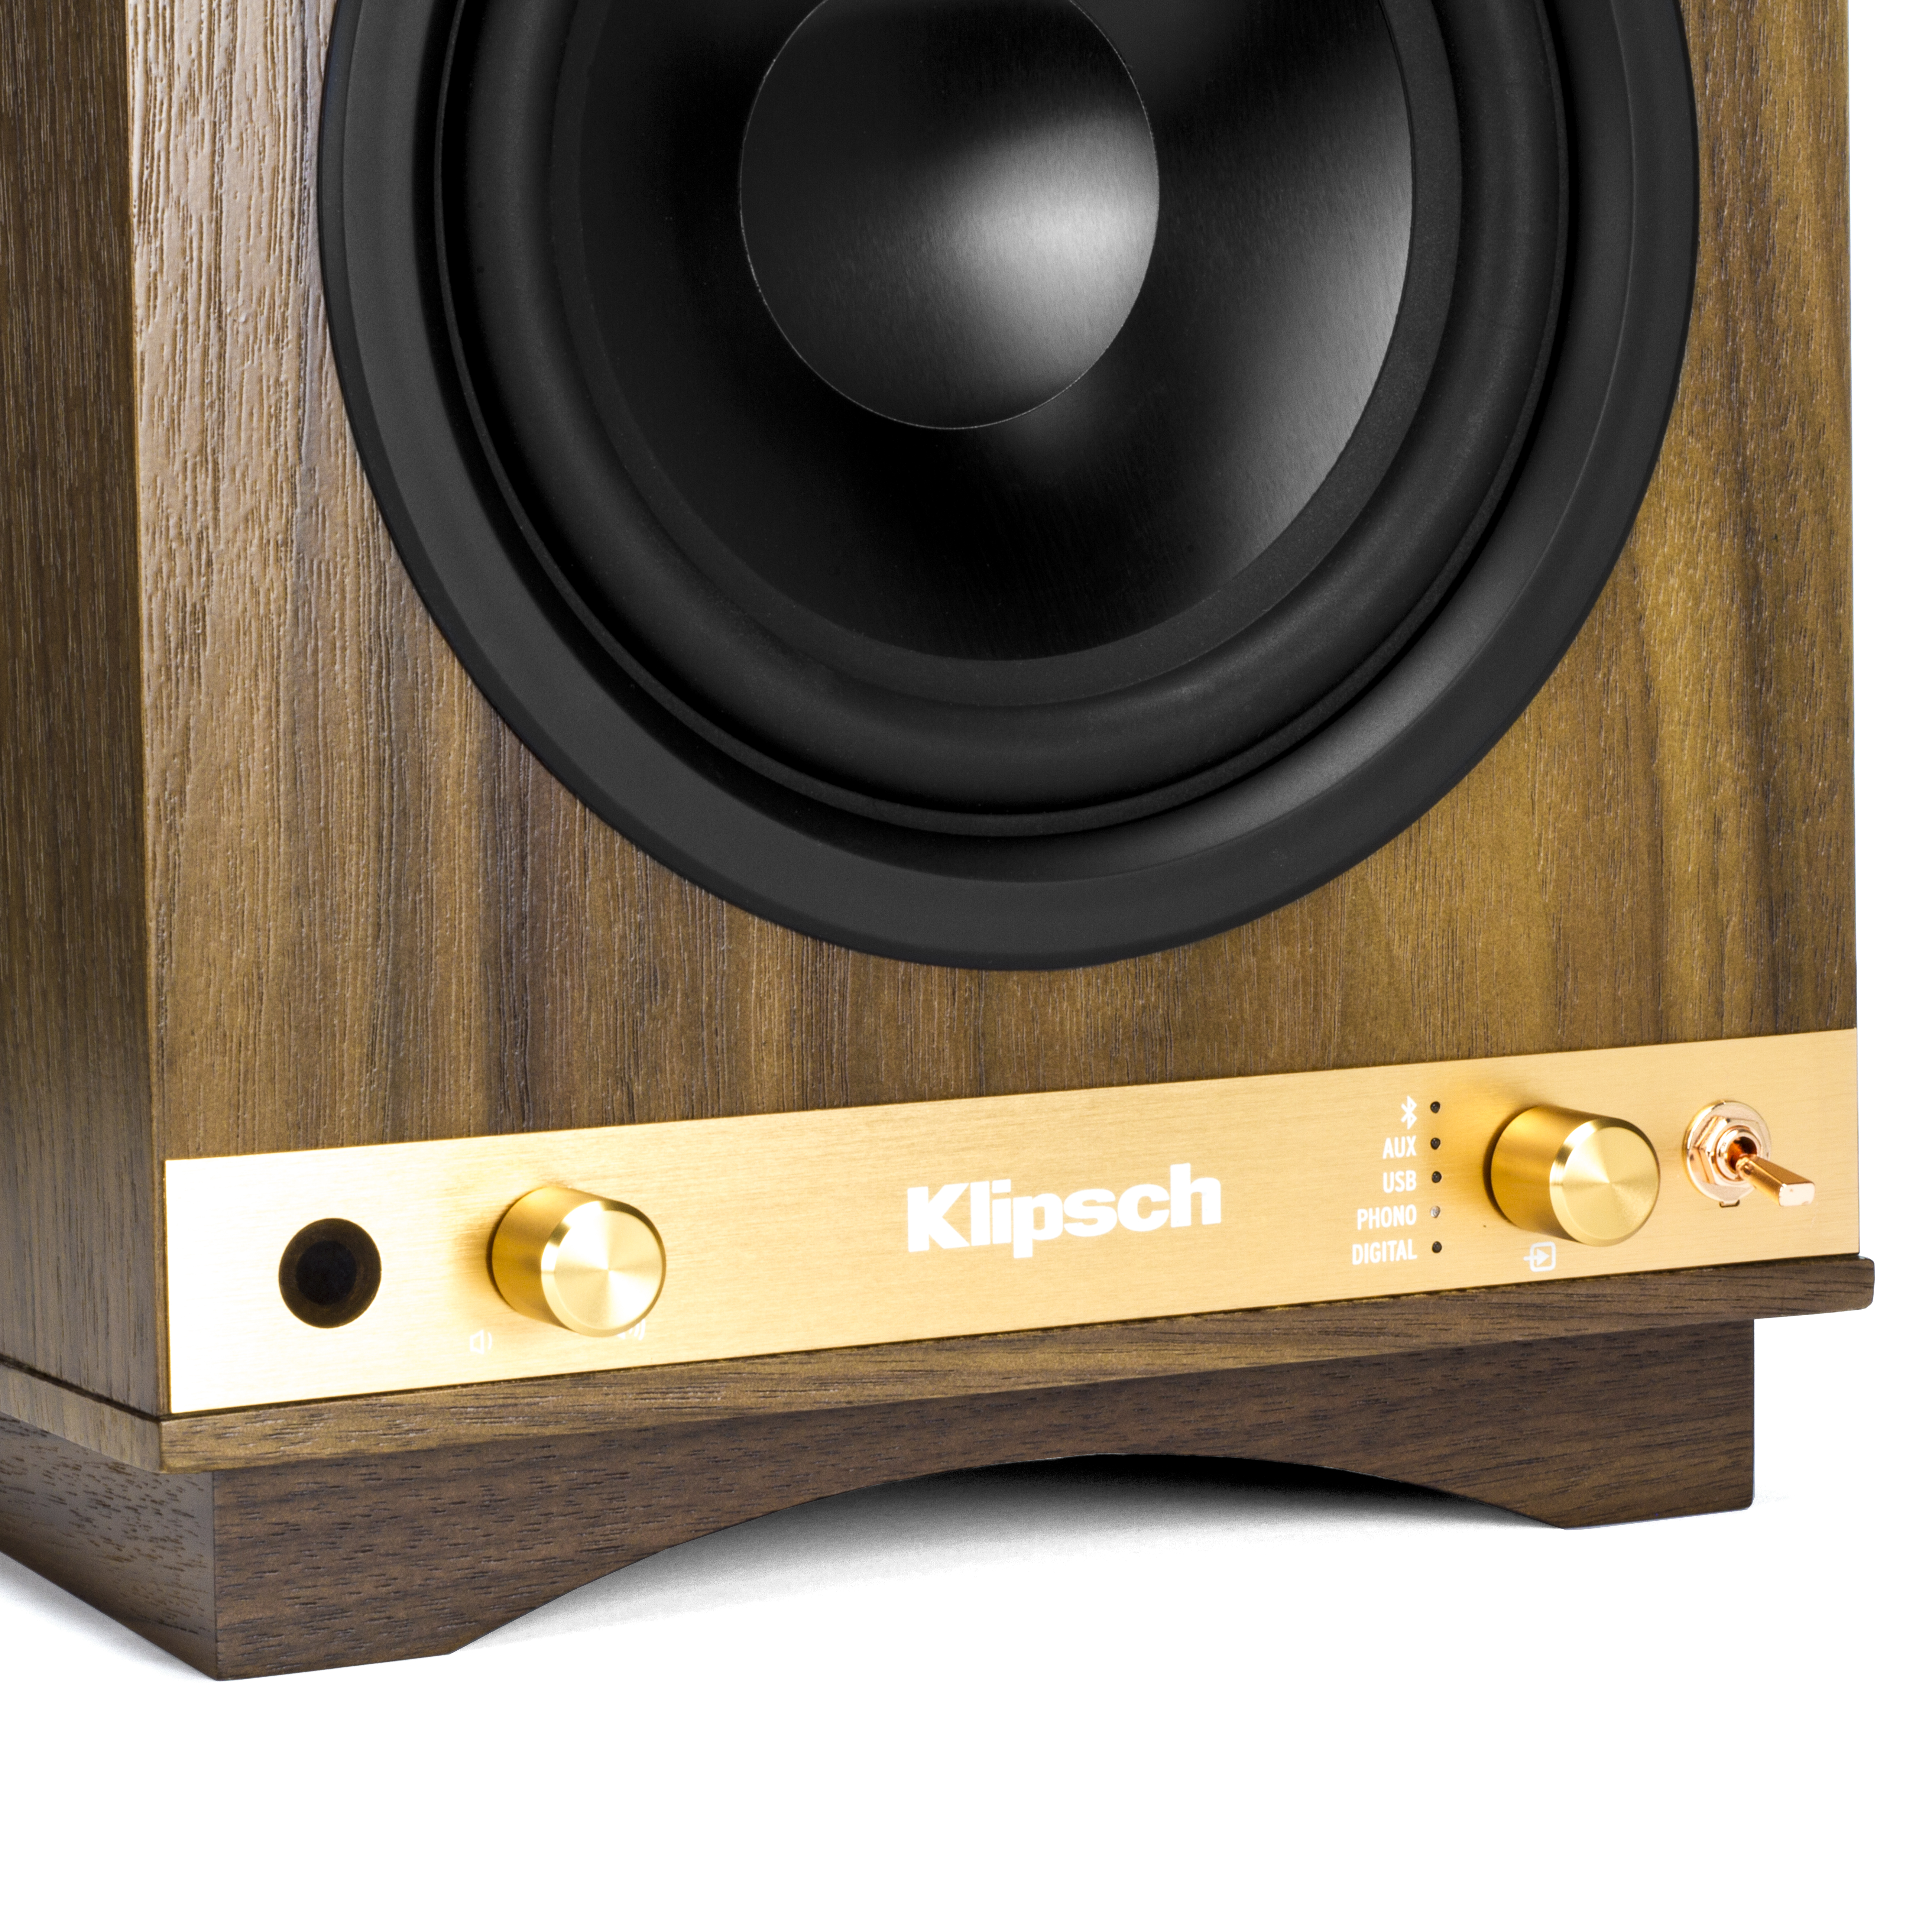 klipsch used speakers. the sixes controls klipsch used speakers r